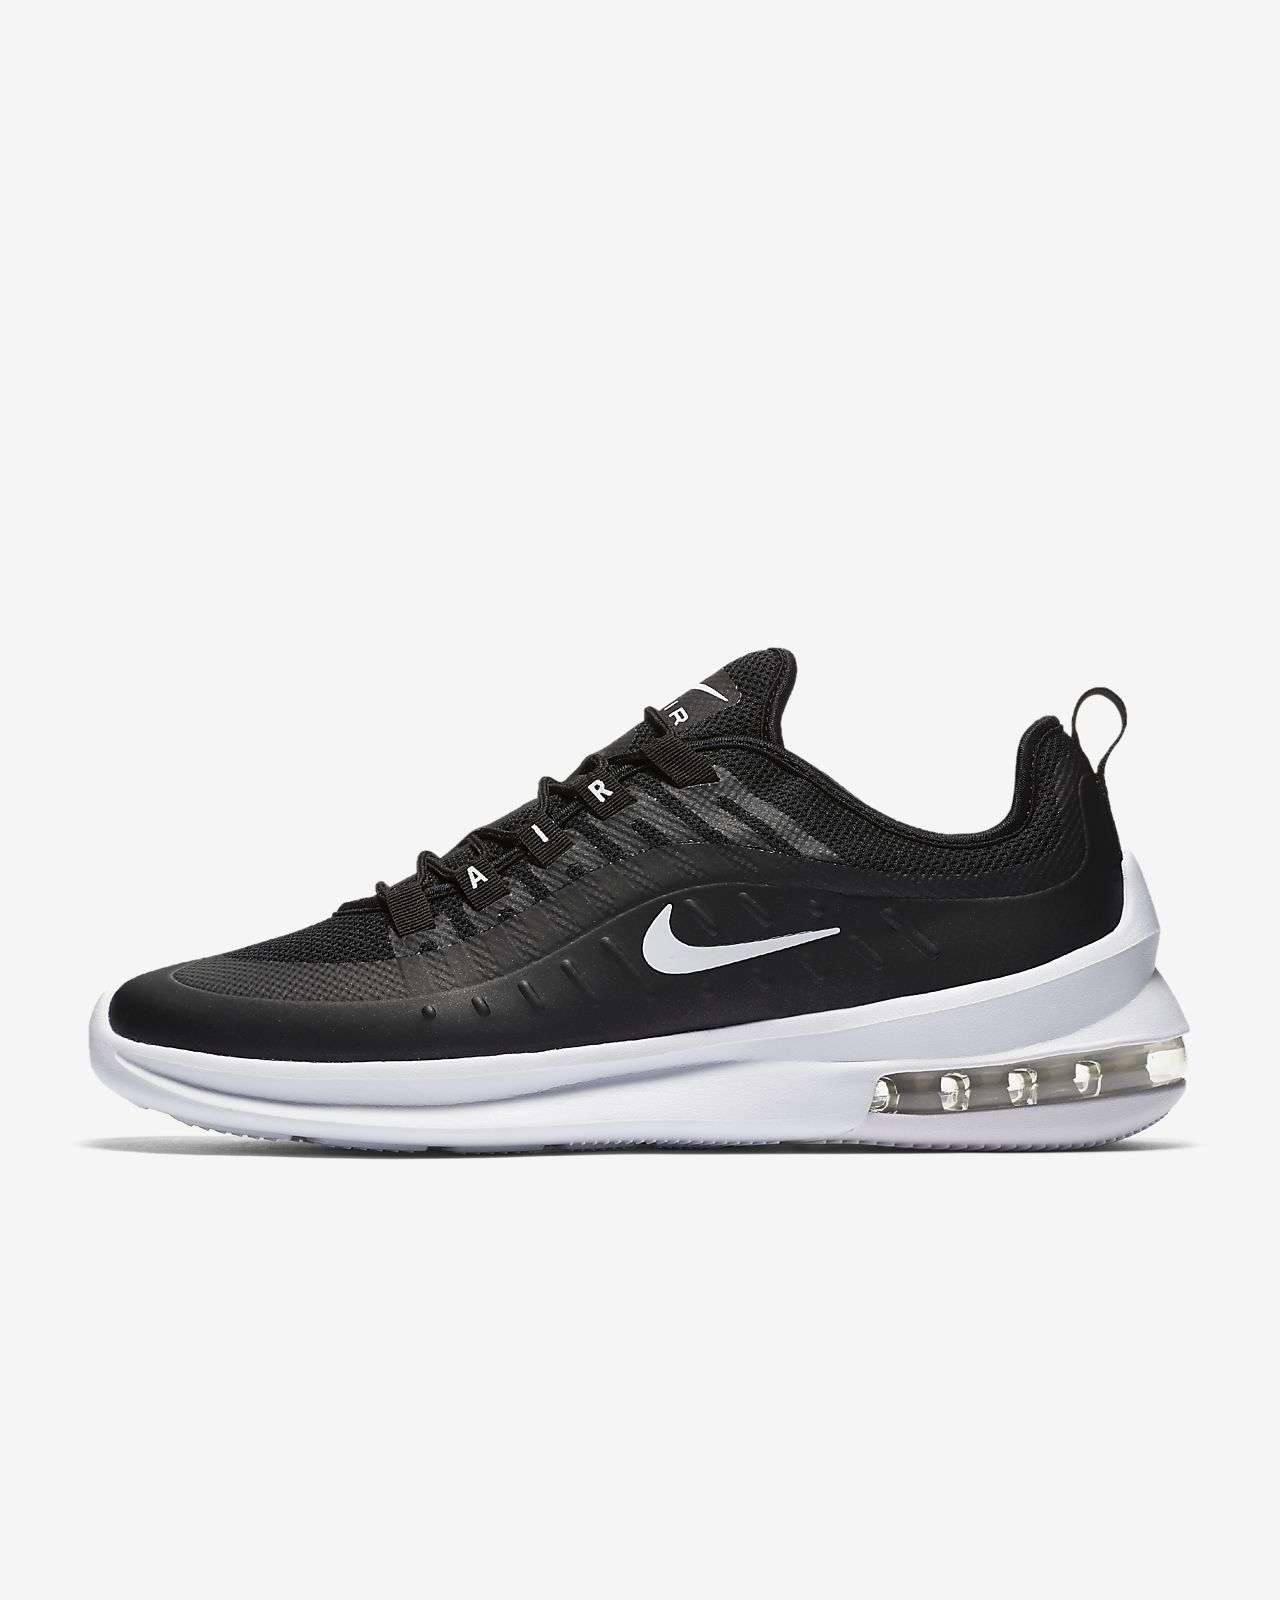 Low Resolution Nike Air Max Axis Men s Shoe Nike Air Max Axis Men s Shoe c8c714c69